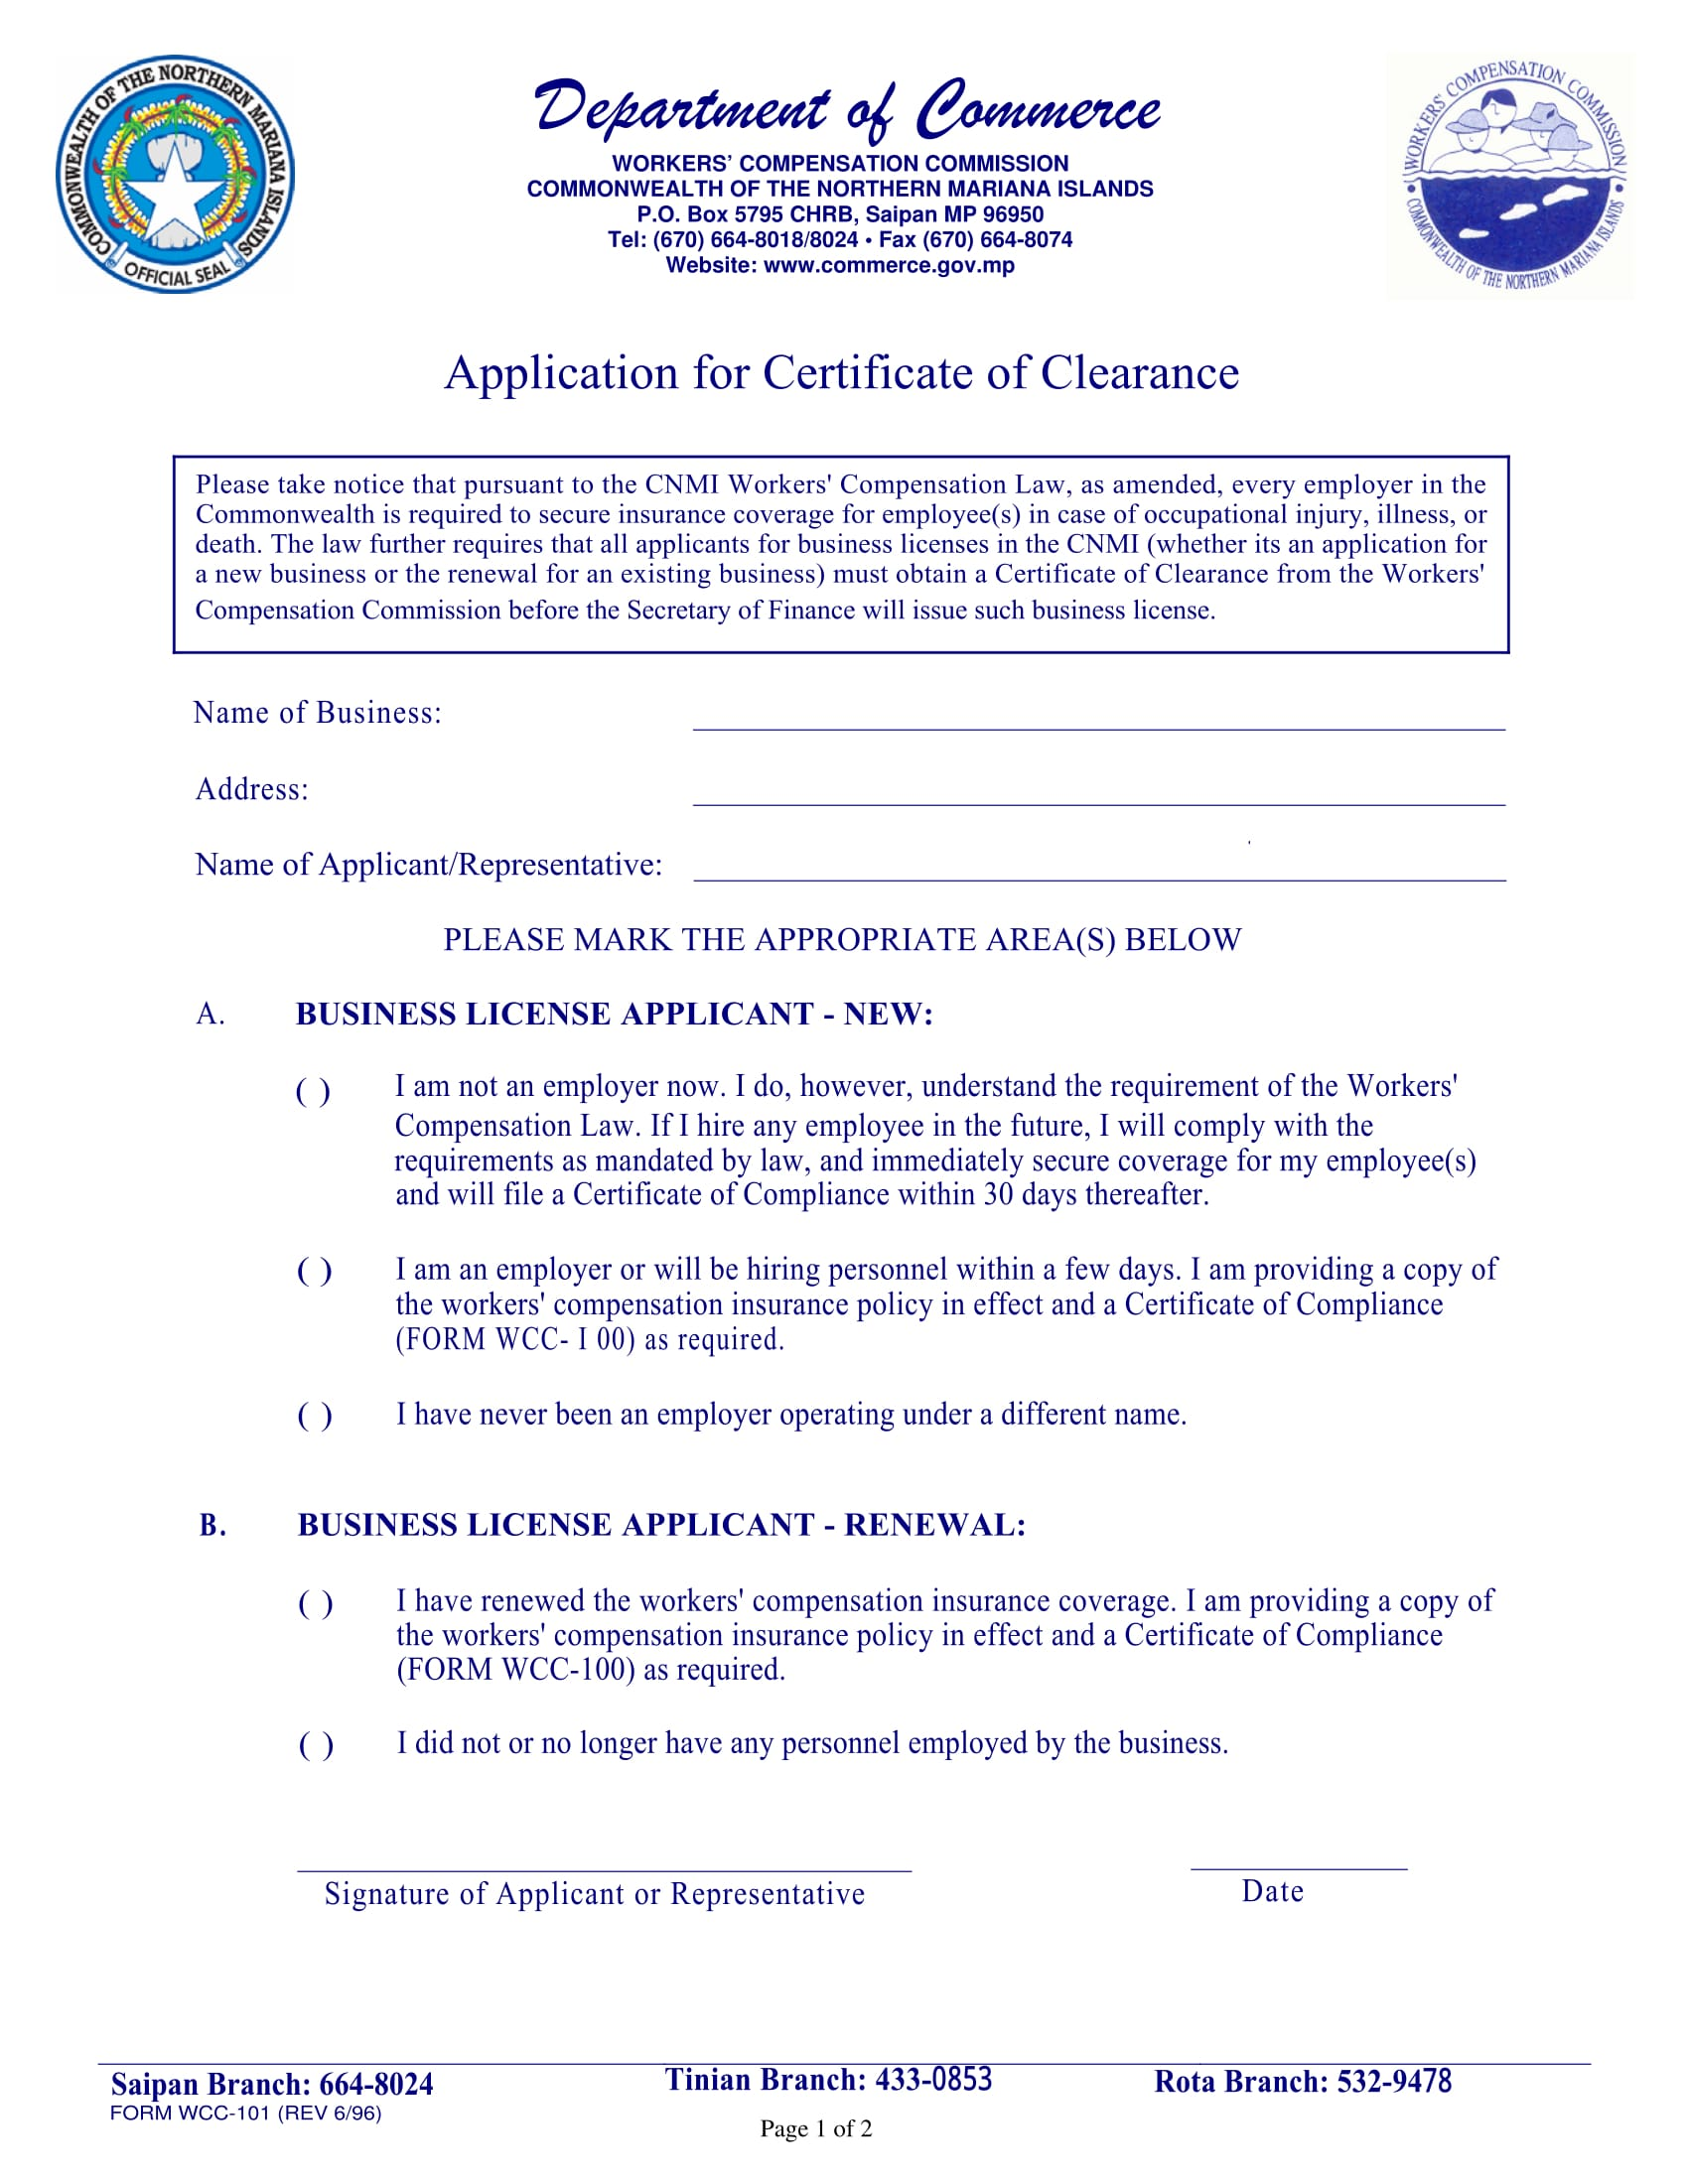 workers compensation clearance application form 1